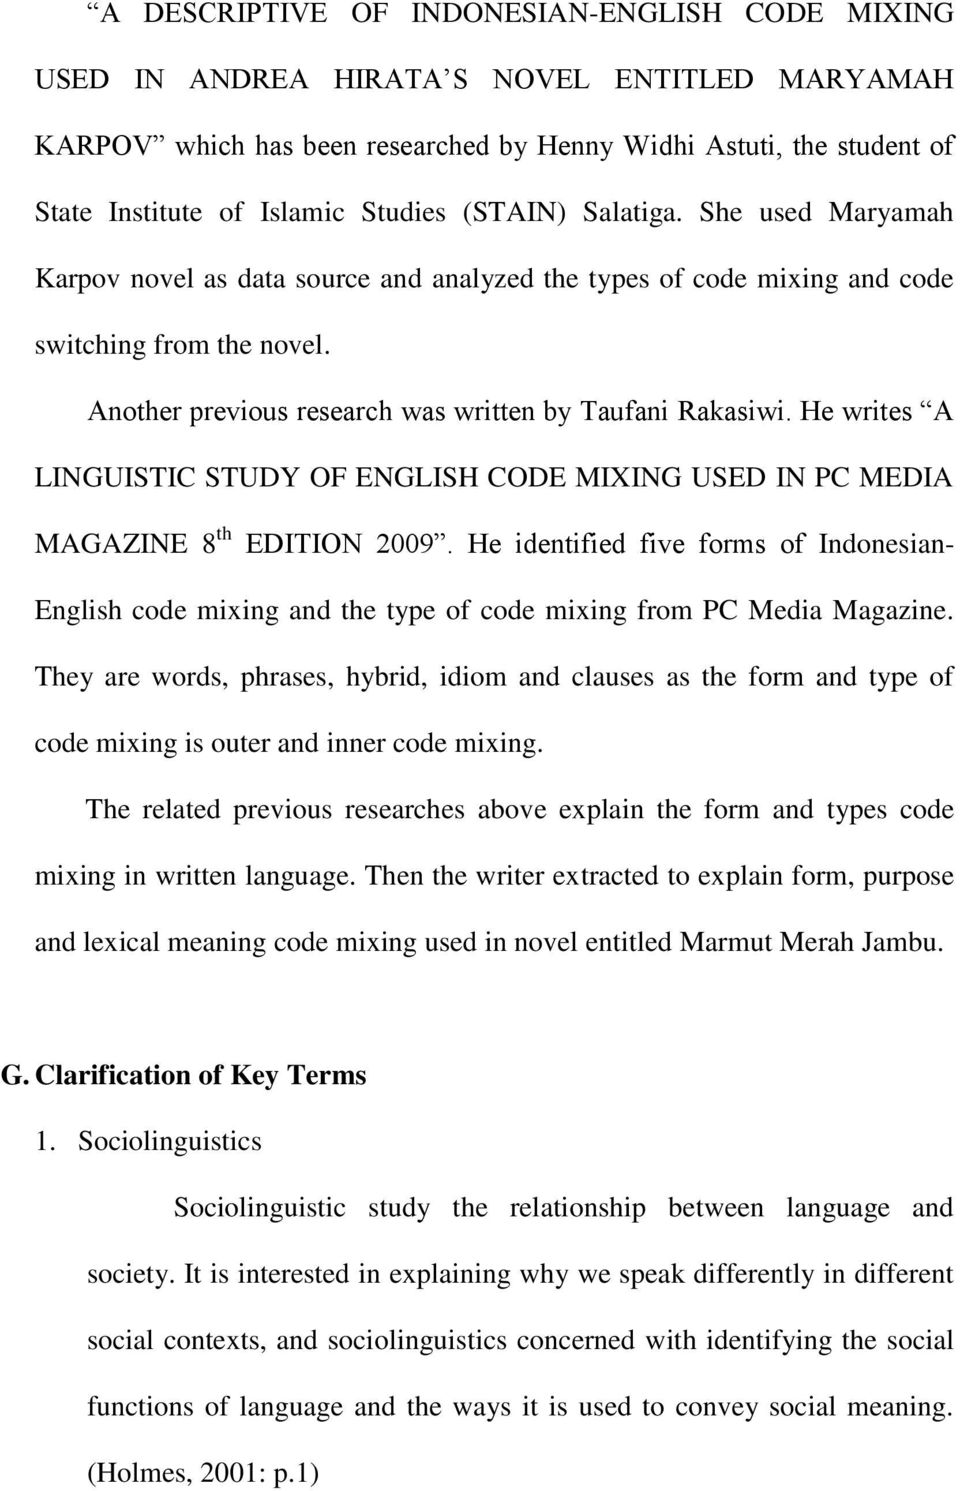 Another previous research was written by Taufani Rakasiwi. He writes A LINGUISTIC STUDY OF ENGLISH CODE MIXING USED IN PC MEDIA MAGAZINE 8 th EDITION 2009.